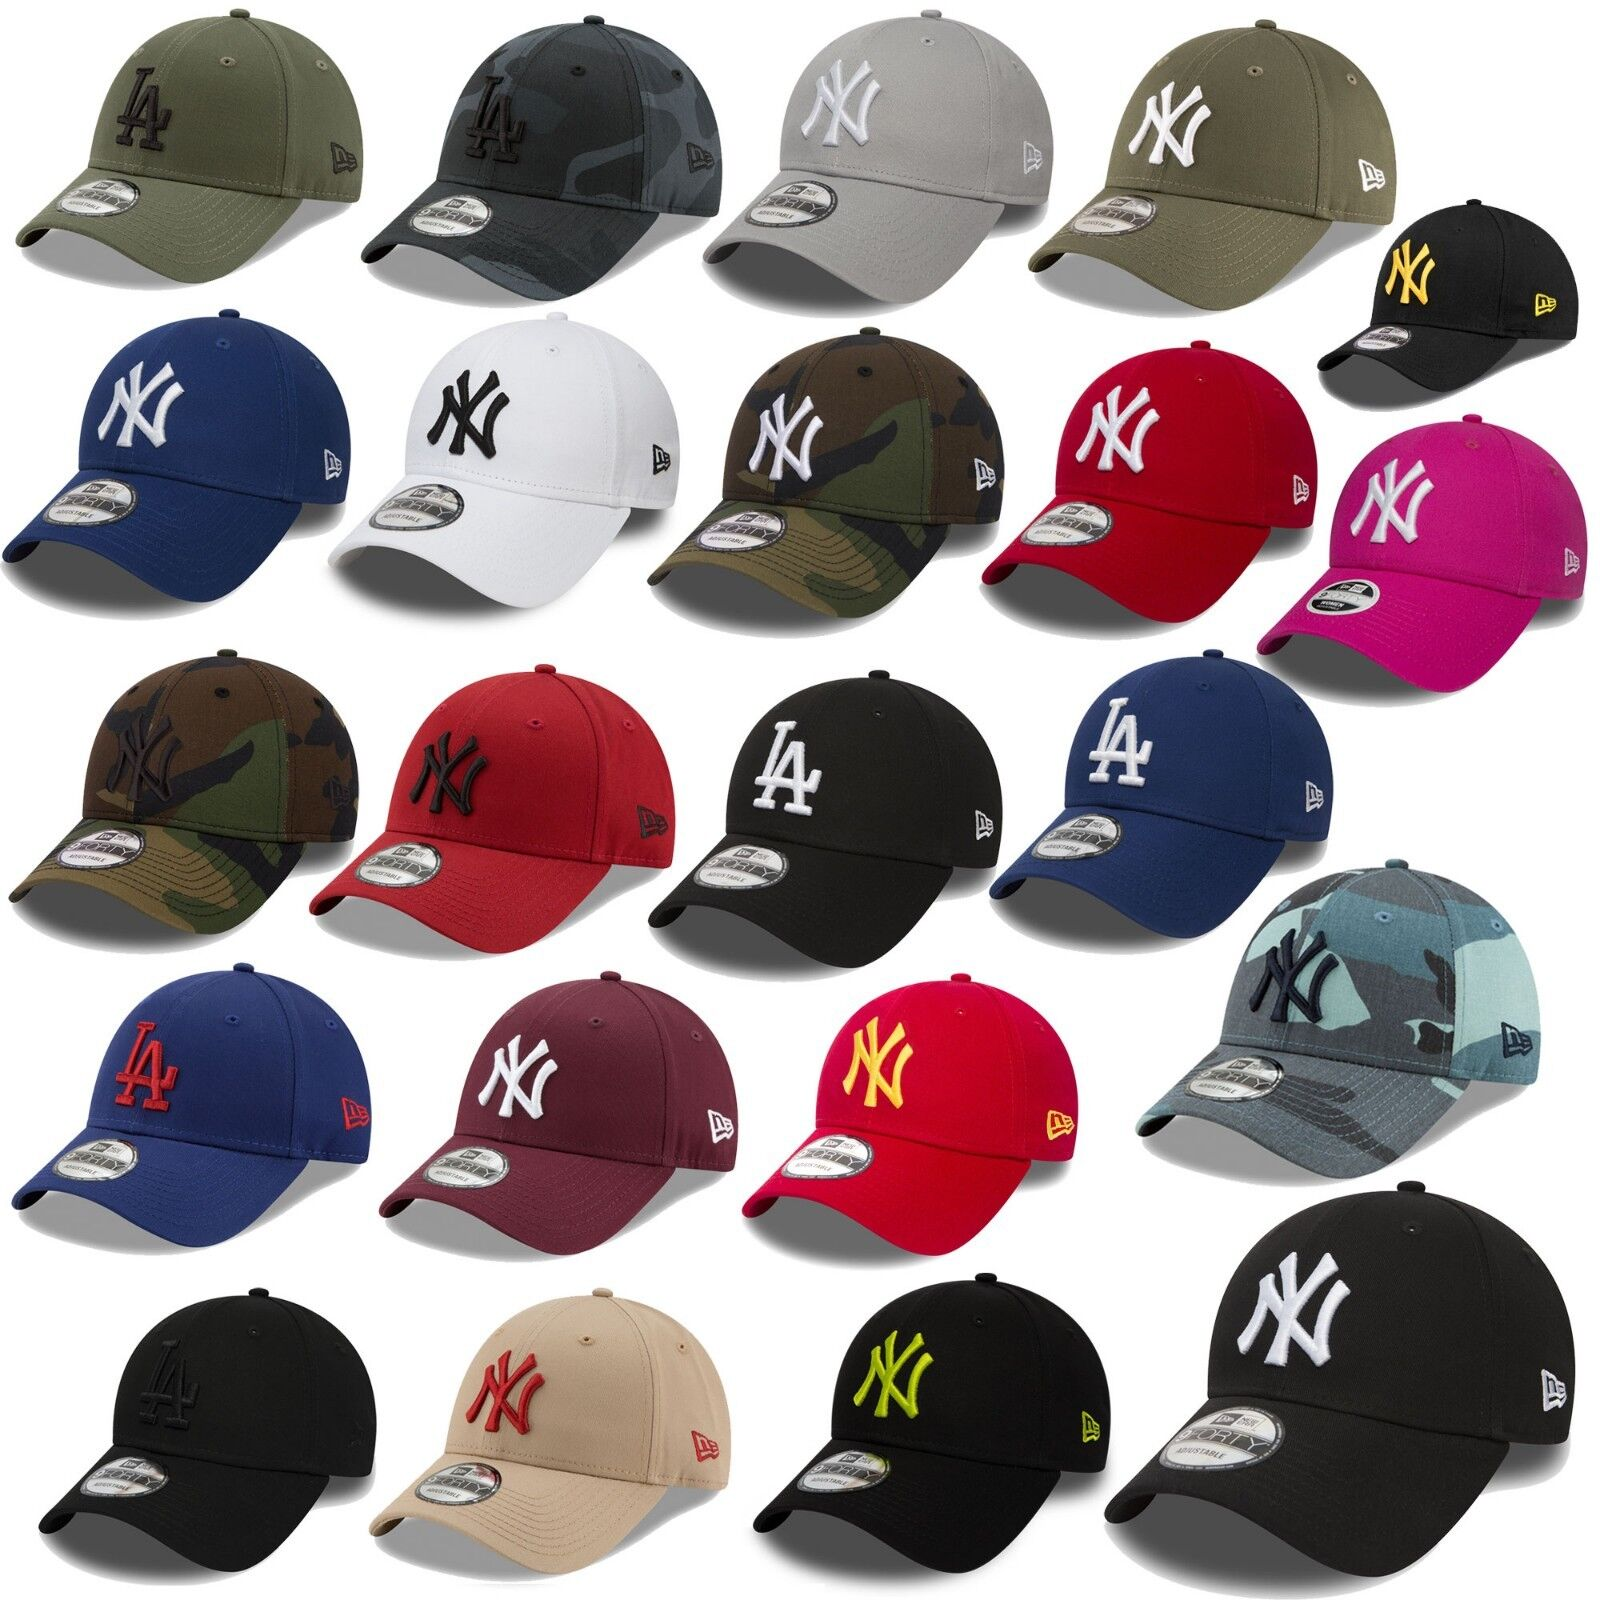 New Era MLB 9Forty Cap New York Yankees Baseball Los Angeles Dodgers Unisex Kapp